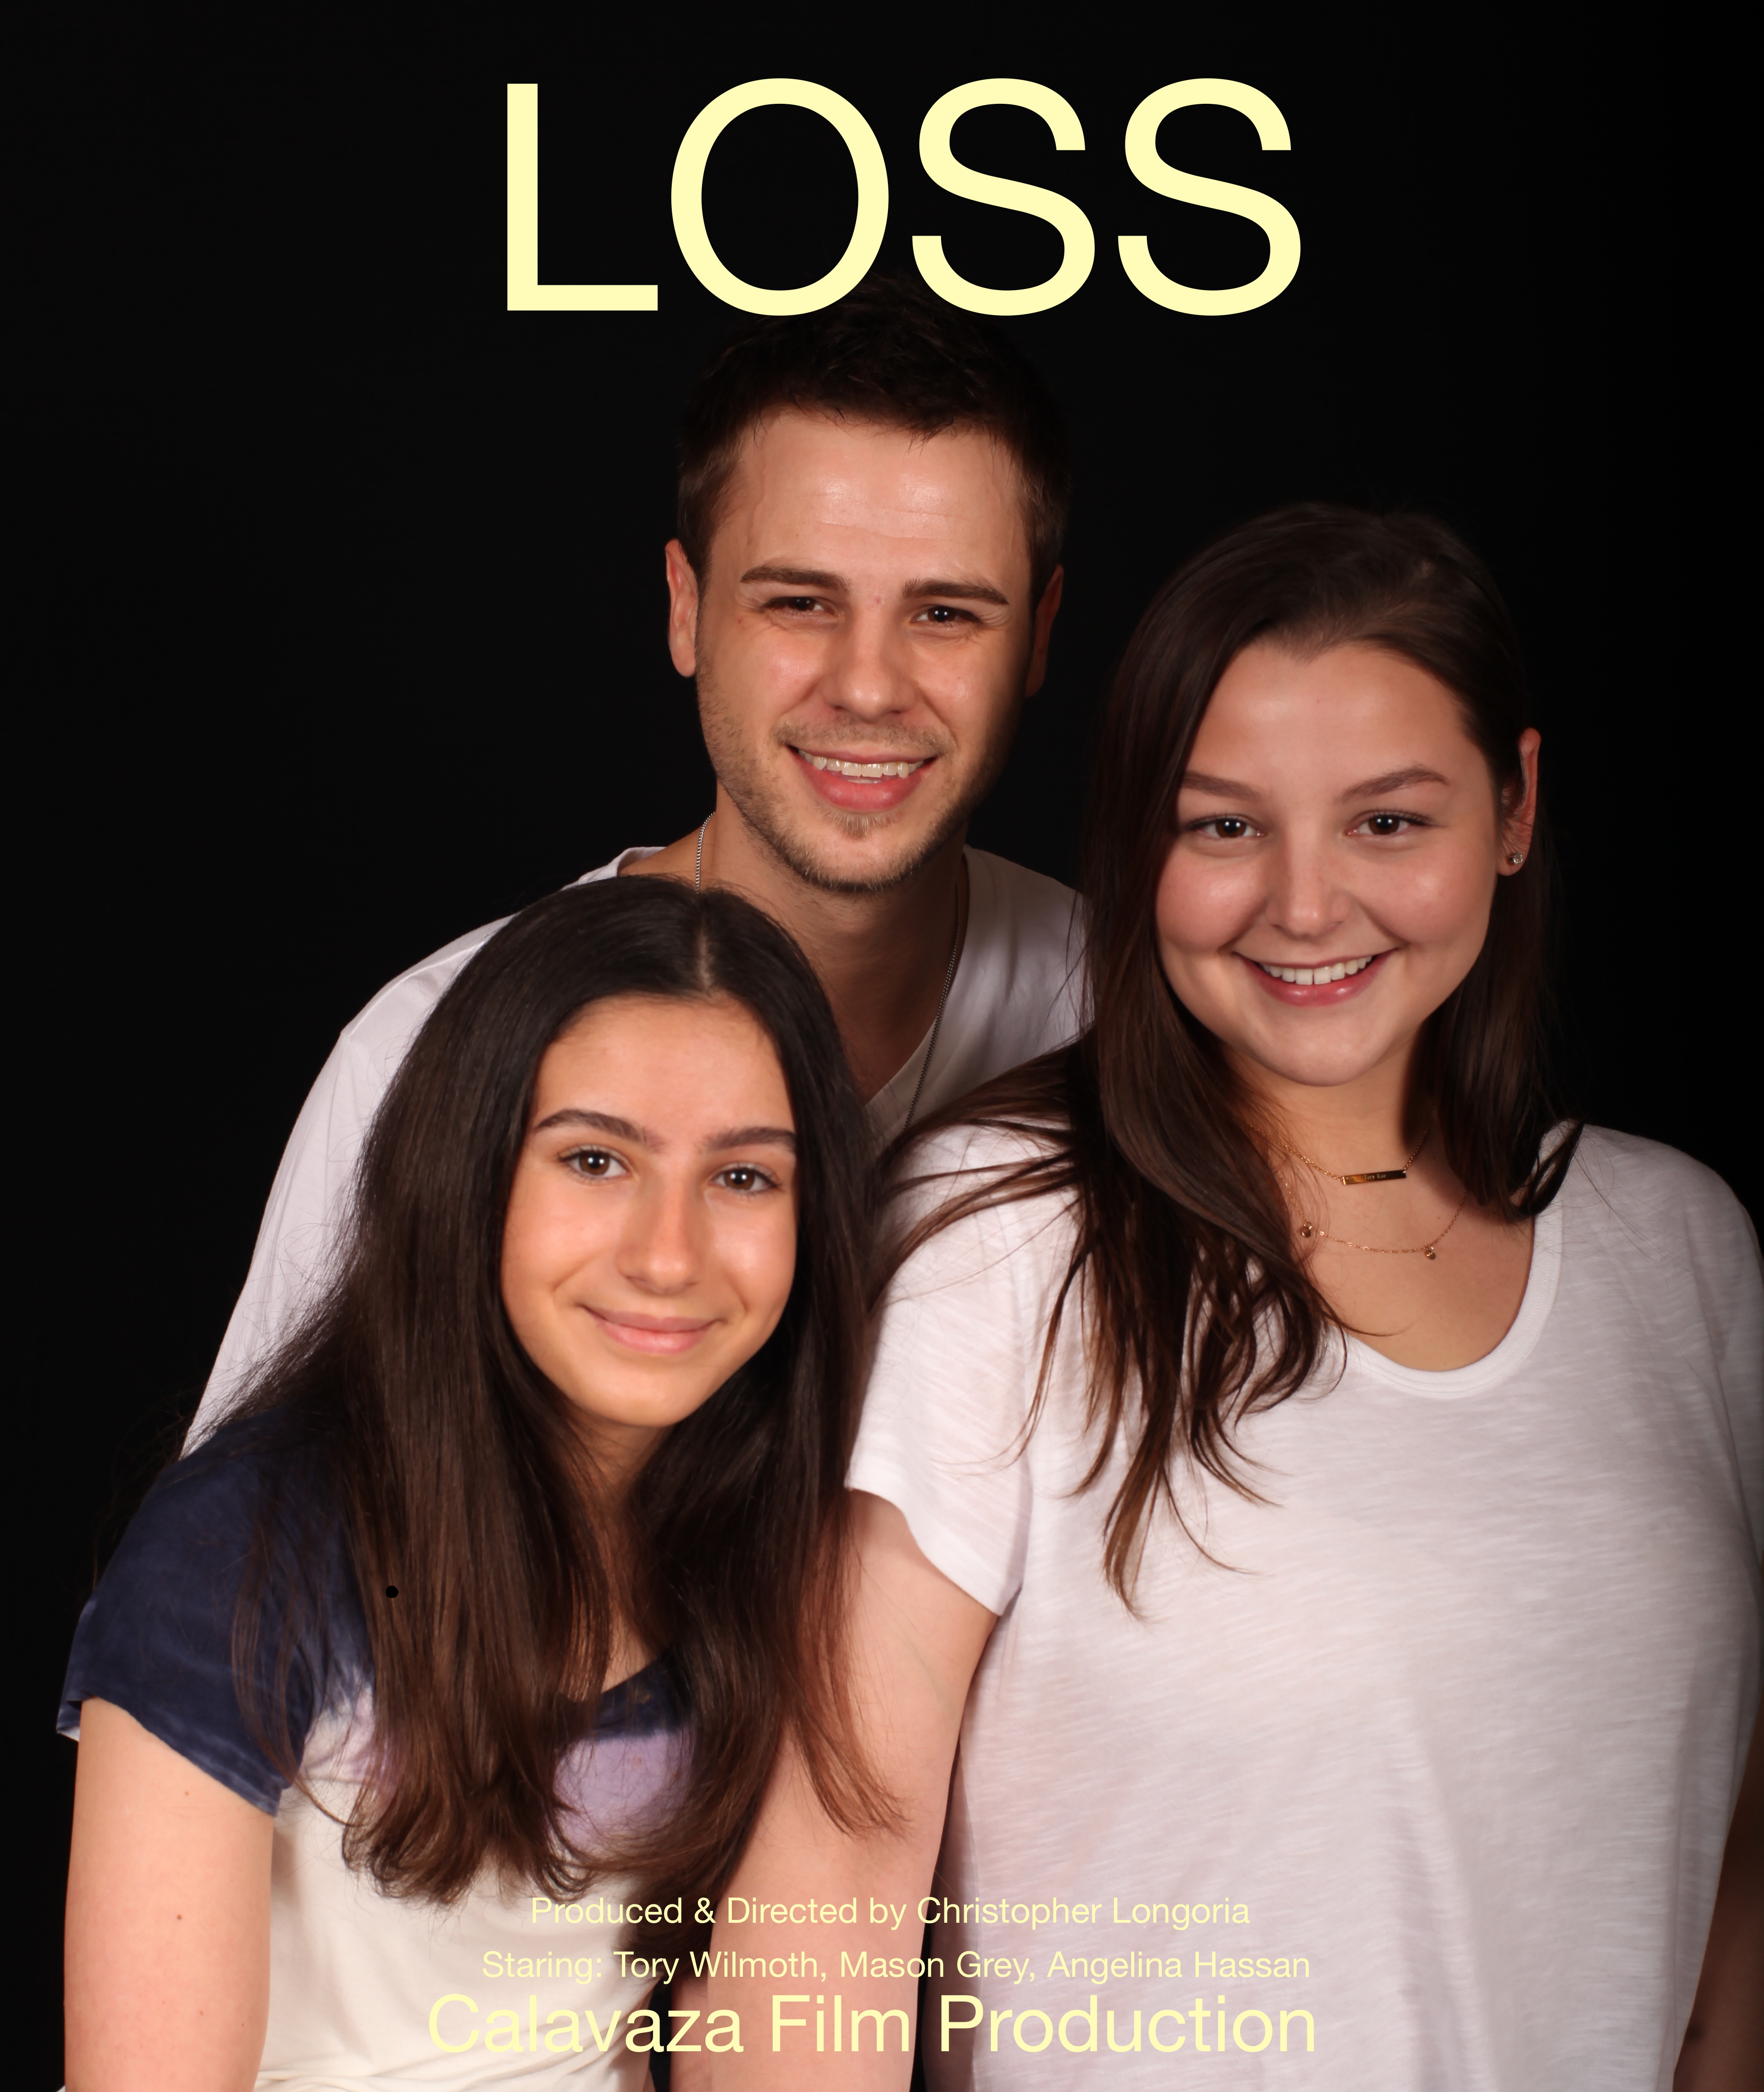 LOSS movie poster